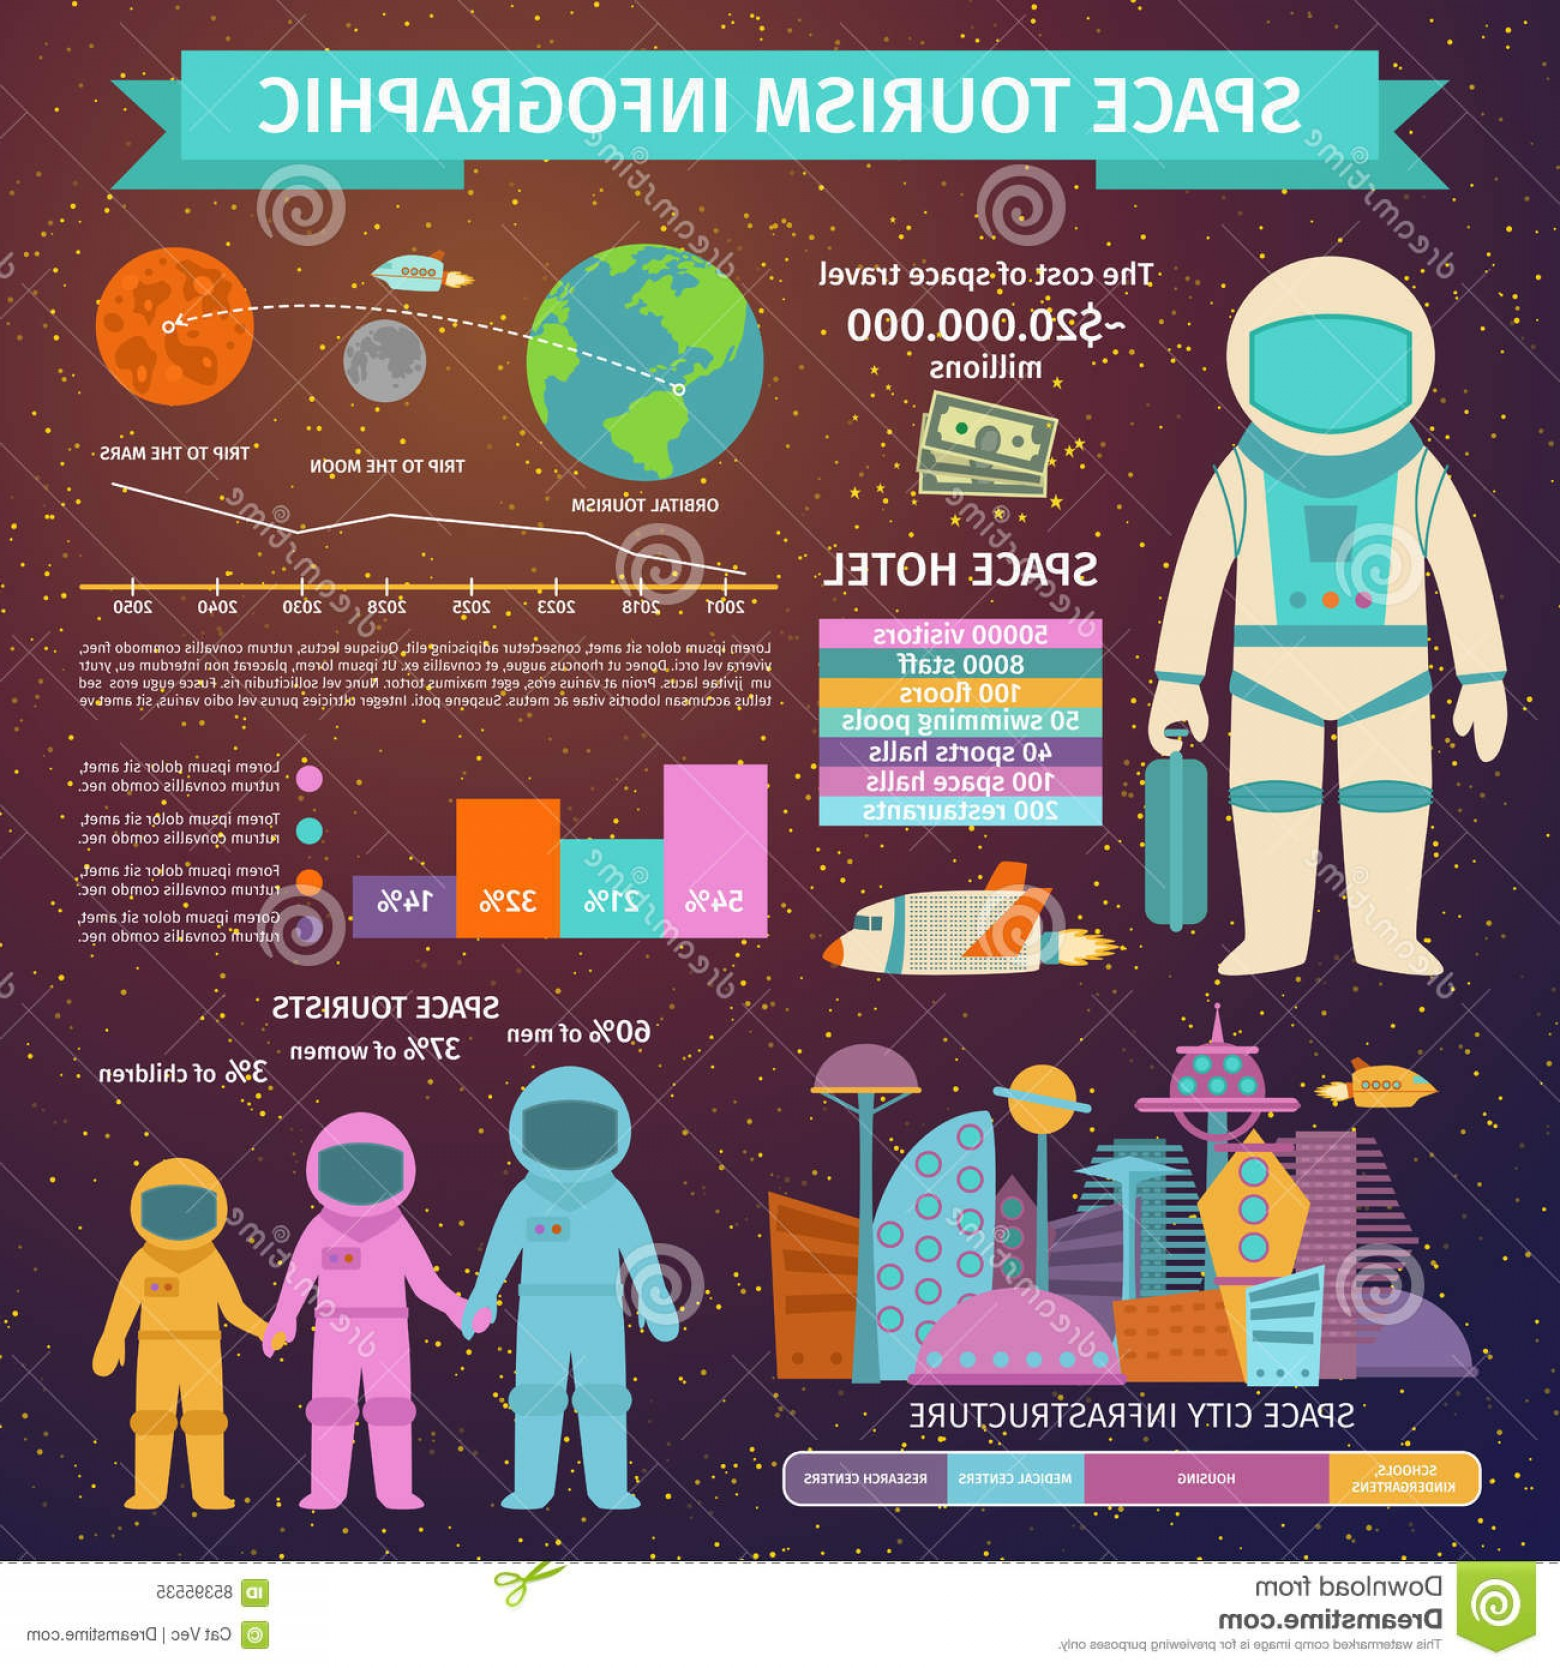 Vector Organisms On A Person: Stock Illustration Space Tourism Infographic Vector Illustration Astronauts Working Having Fun Galaxy Atmosphere System Fantasy Image